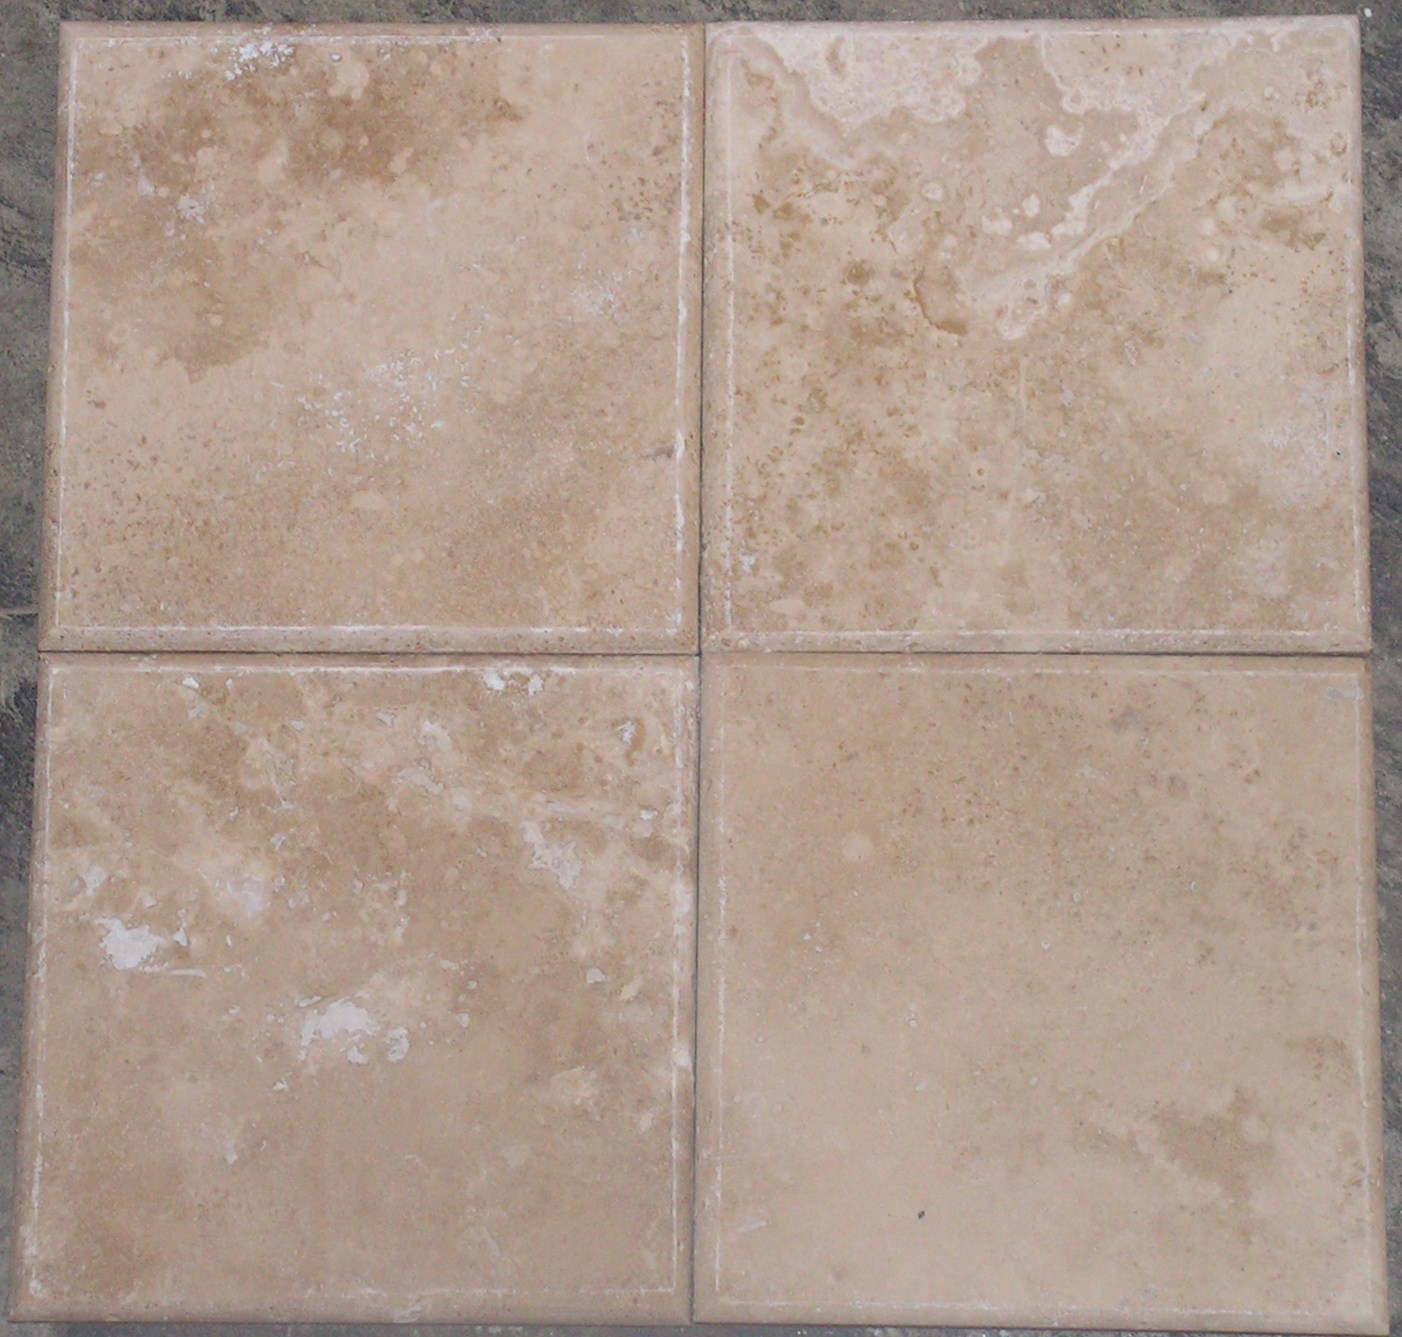 Beltile Durango Pillowed Travertine 6x6 6x6 Beltile